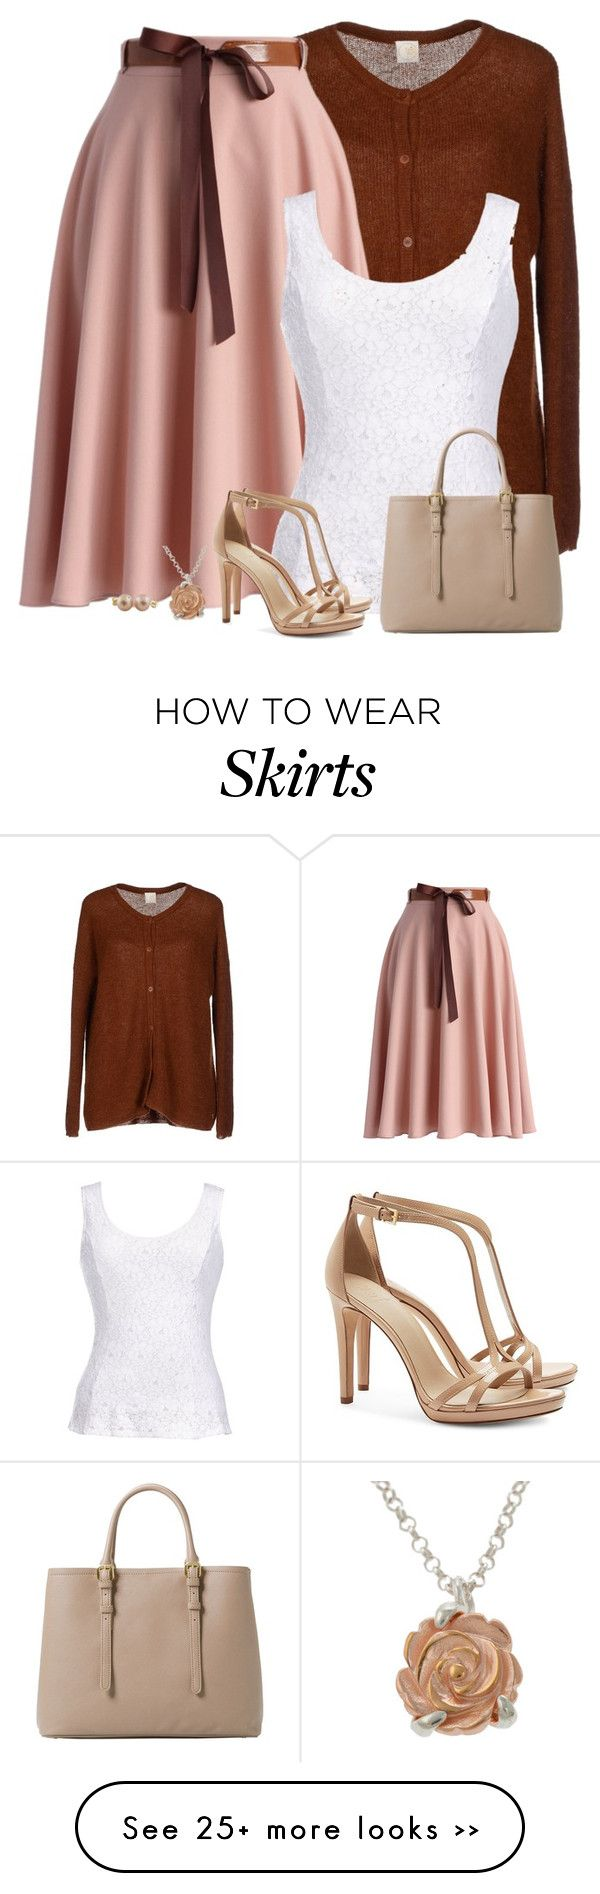 """belted skirt"" by divacrafts on Polyvore"